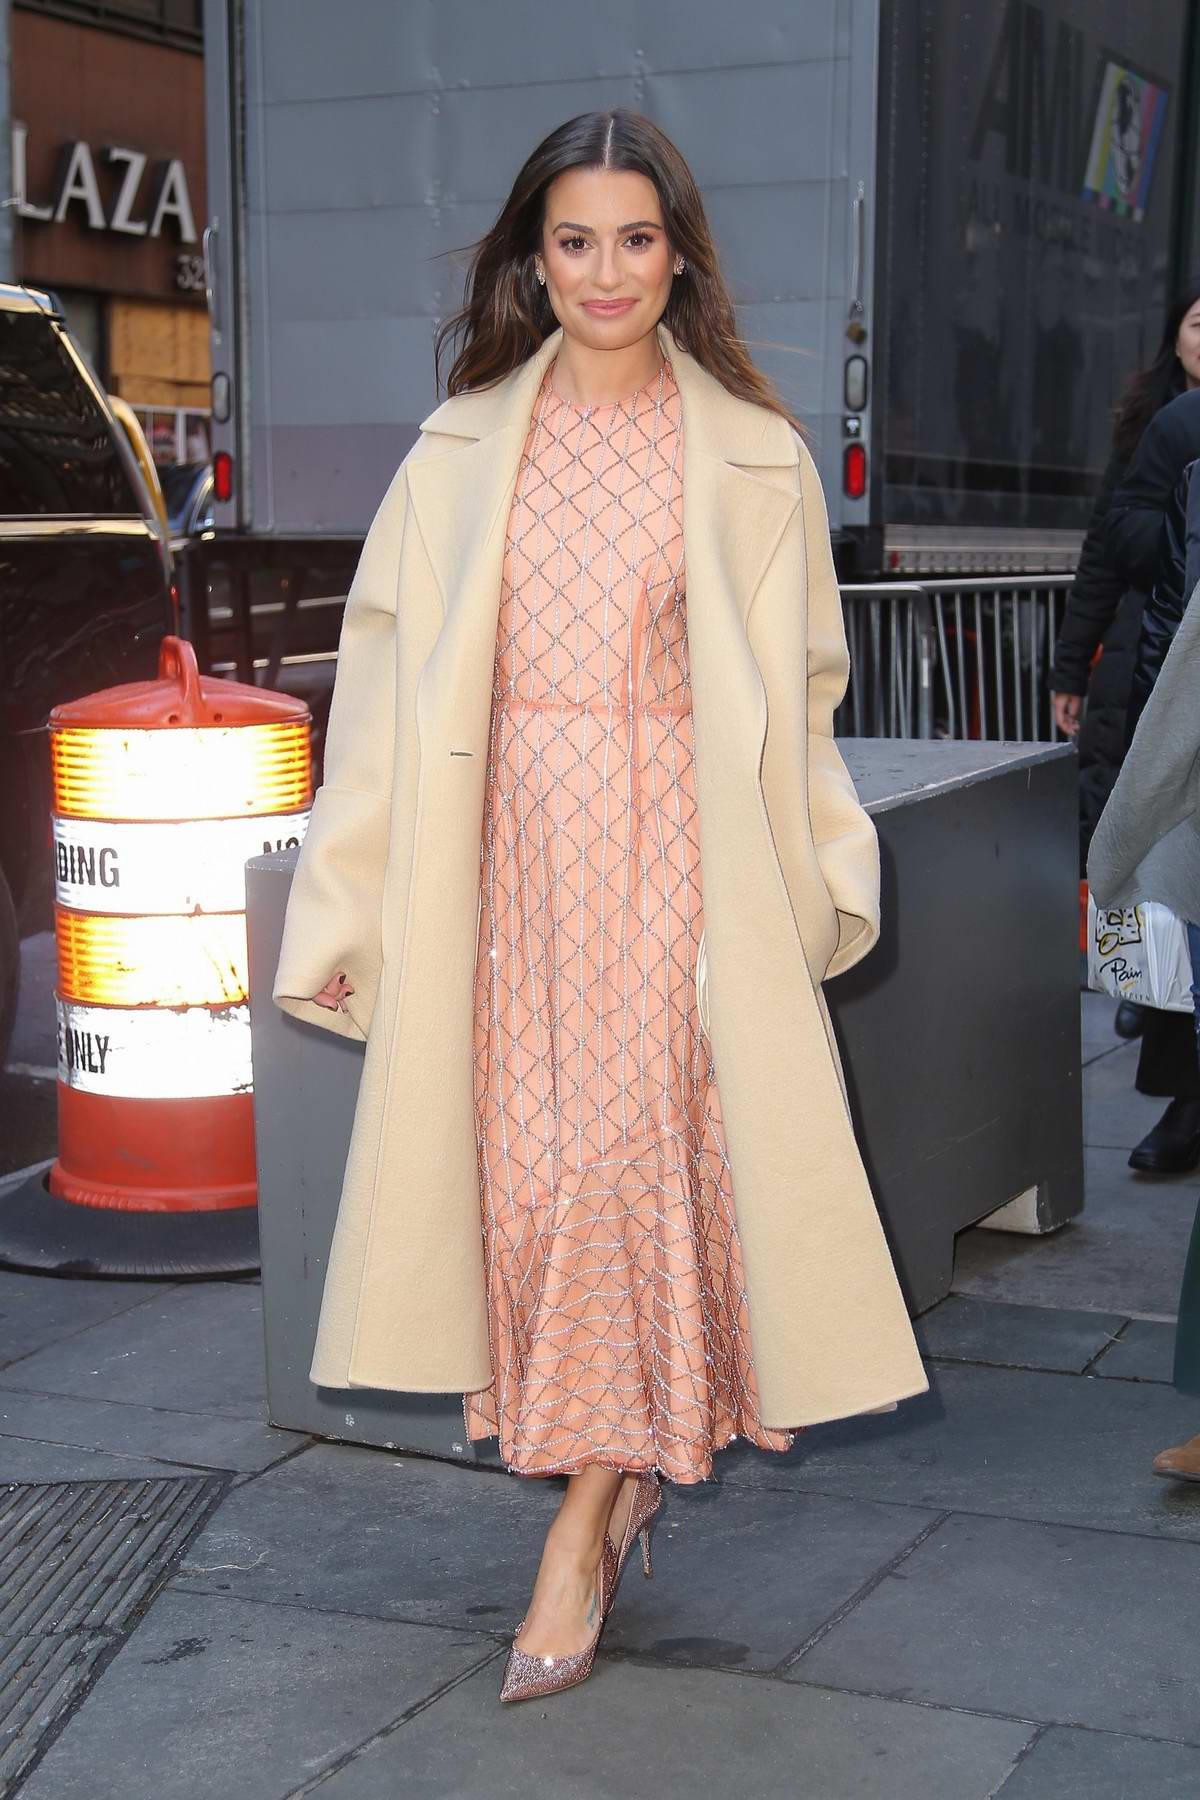 Lea Michele looks great in a pink dress with beige trench coat while out in New York City